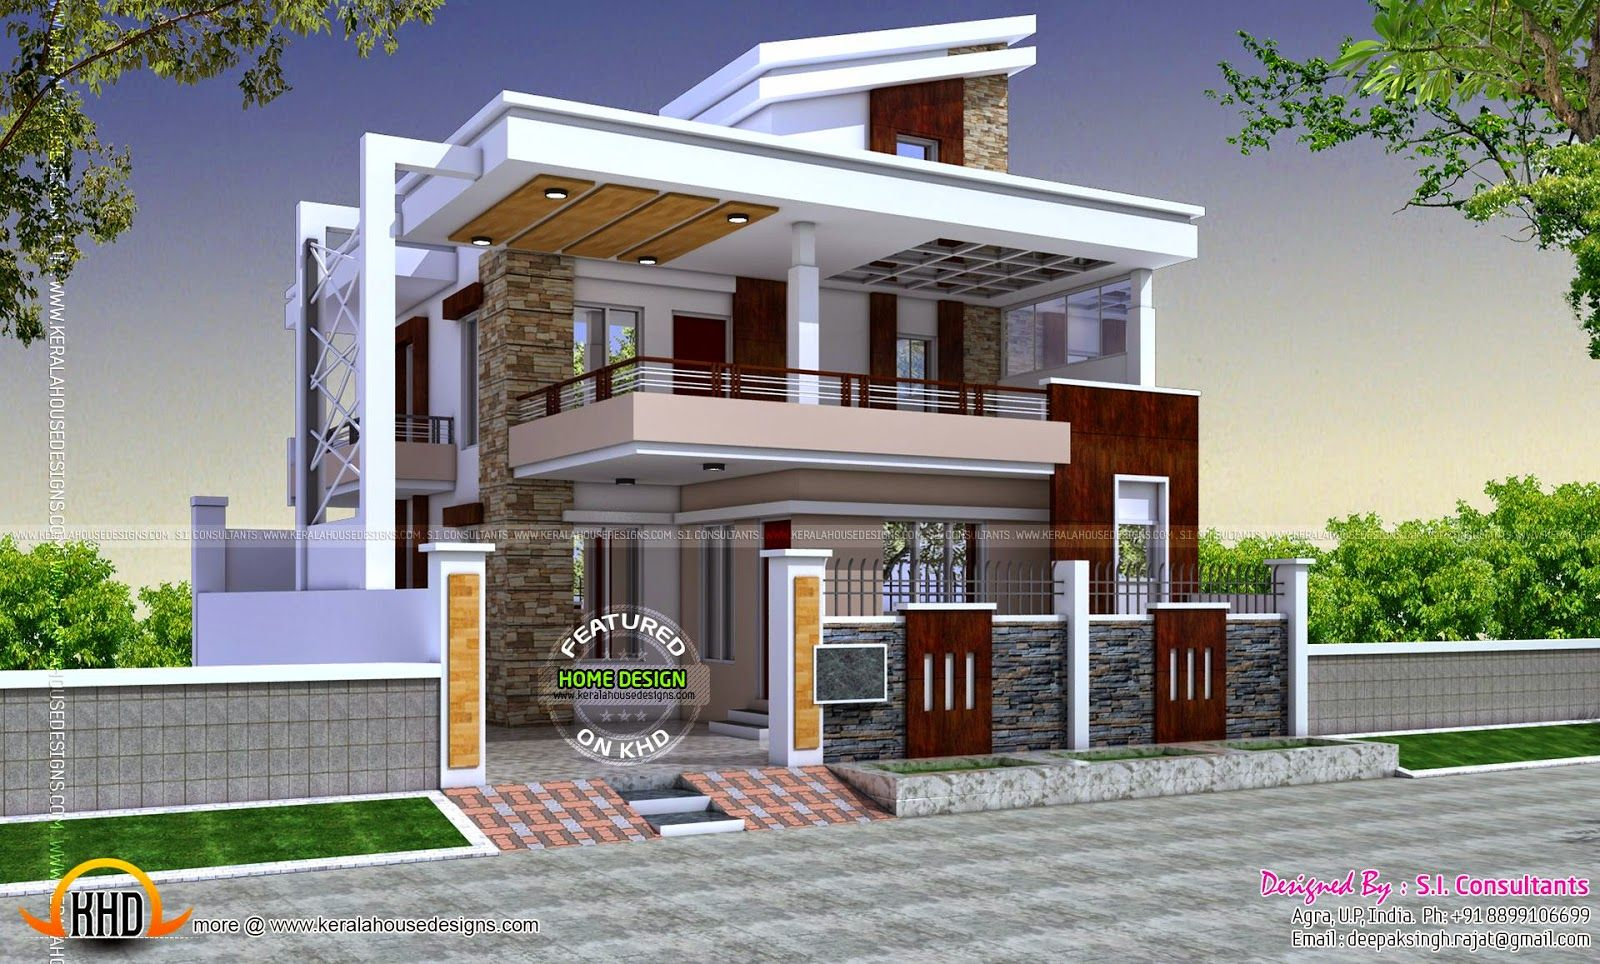 hillside house design in kerala architectural home design home exterior designs india - Home Design Gallery